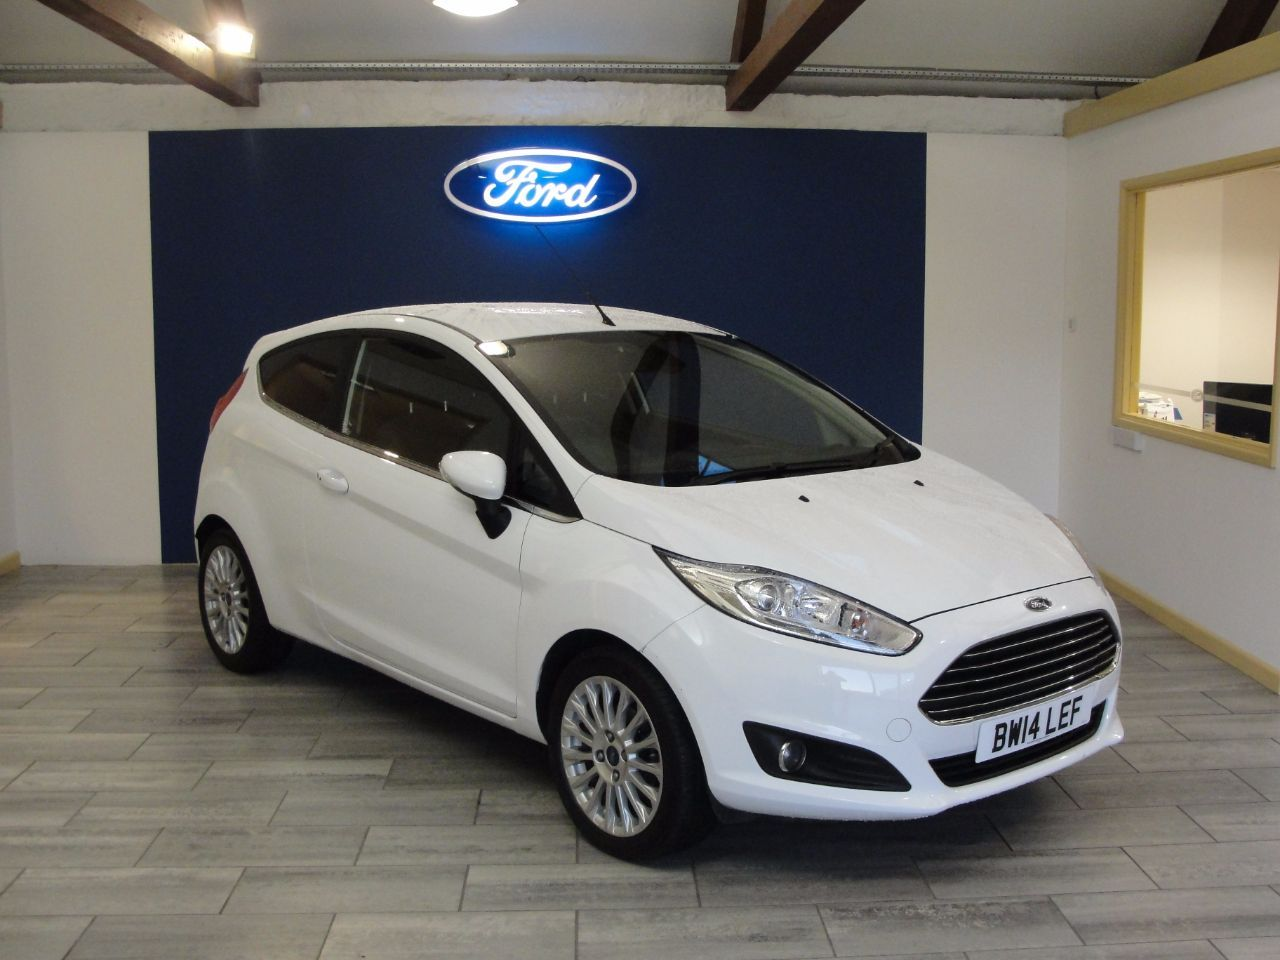 Ford Fiesta 1 0 Ecoboost Titanium 3dr Hatchback Petrol White Ford Used Ford Ford Fiesta